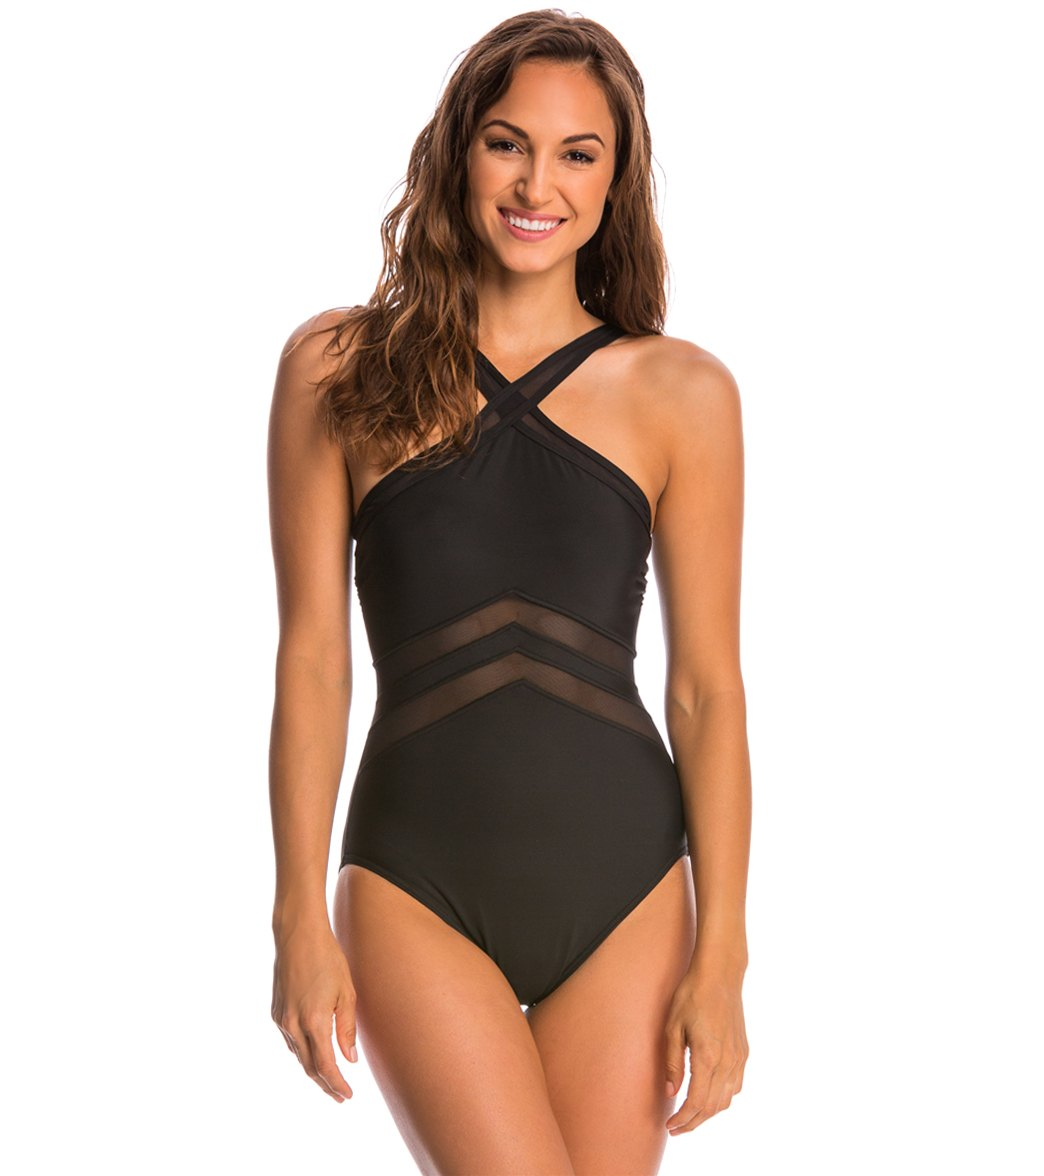 ca96b527bfe Miraclesuit Point of View High Neck One Piece Swimsuit at ...